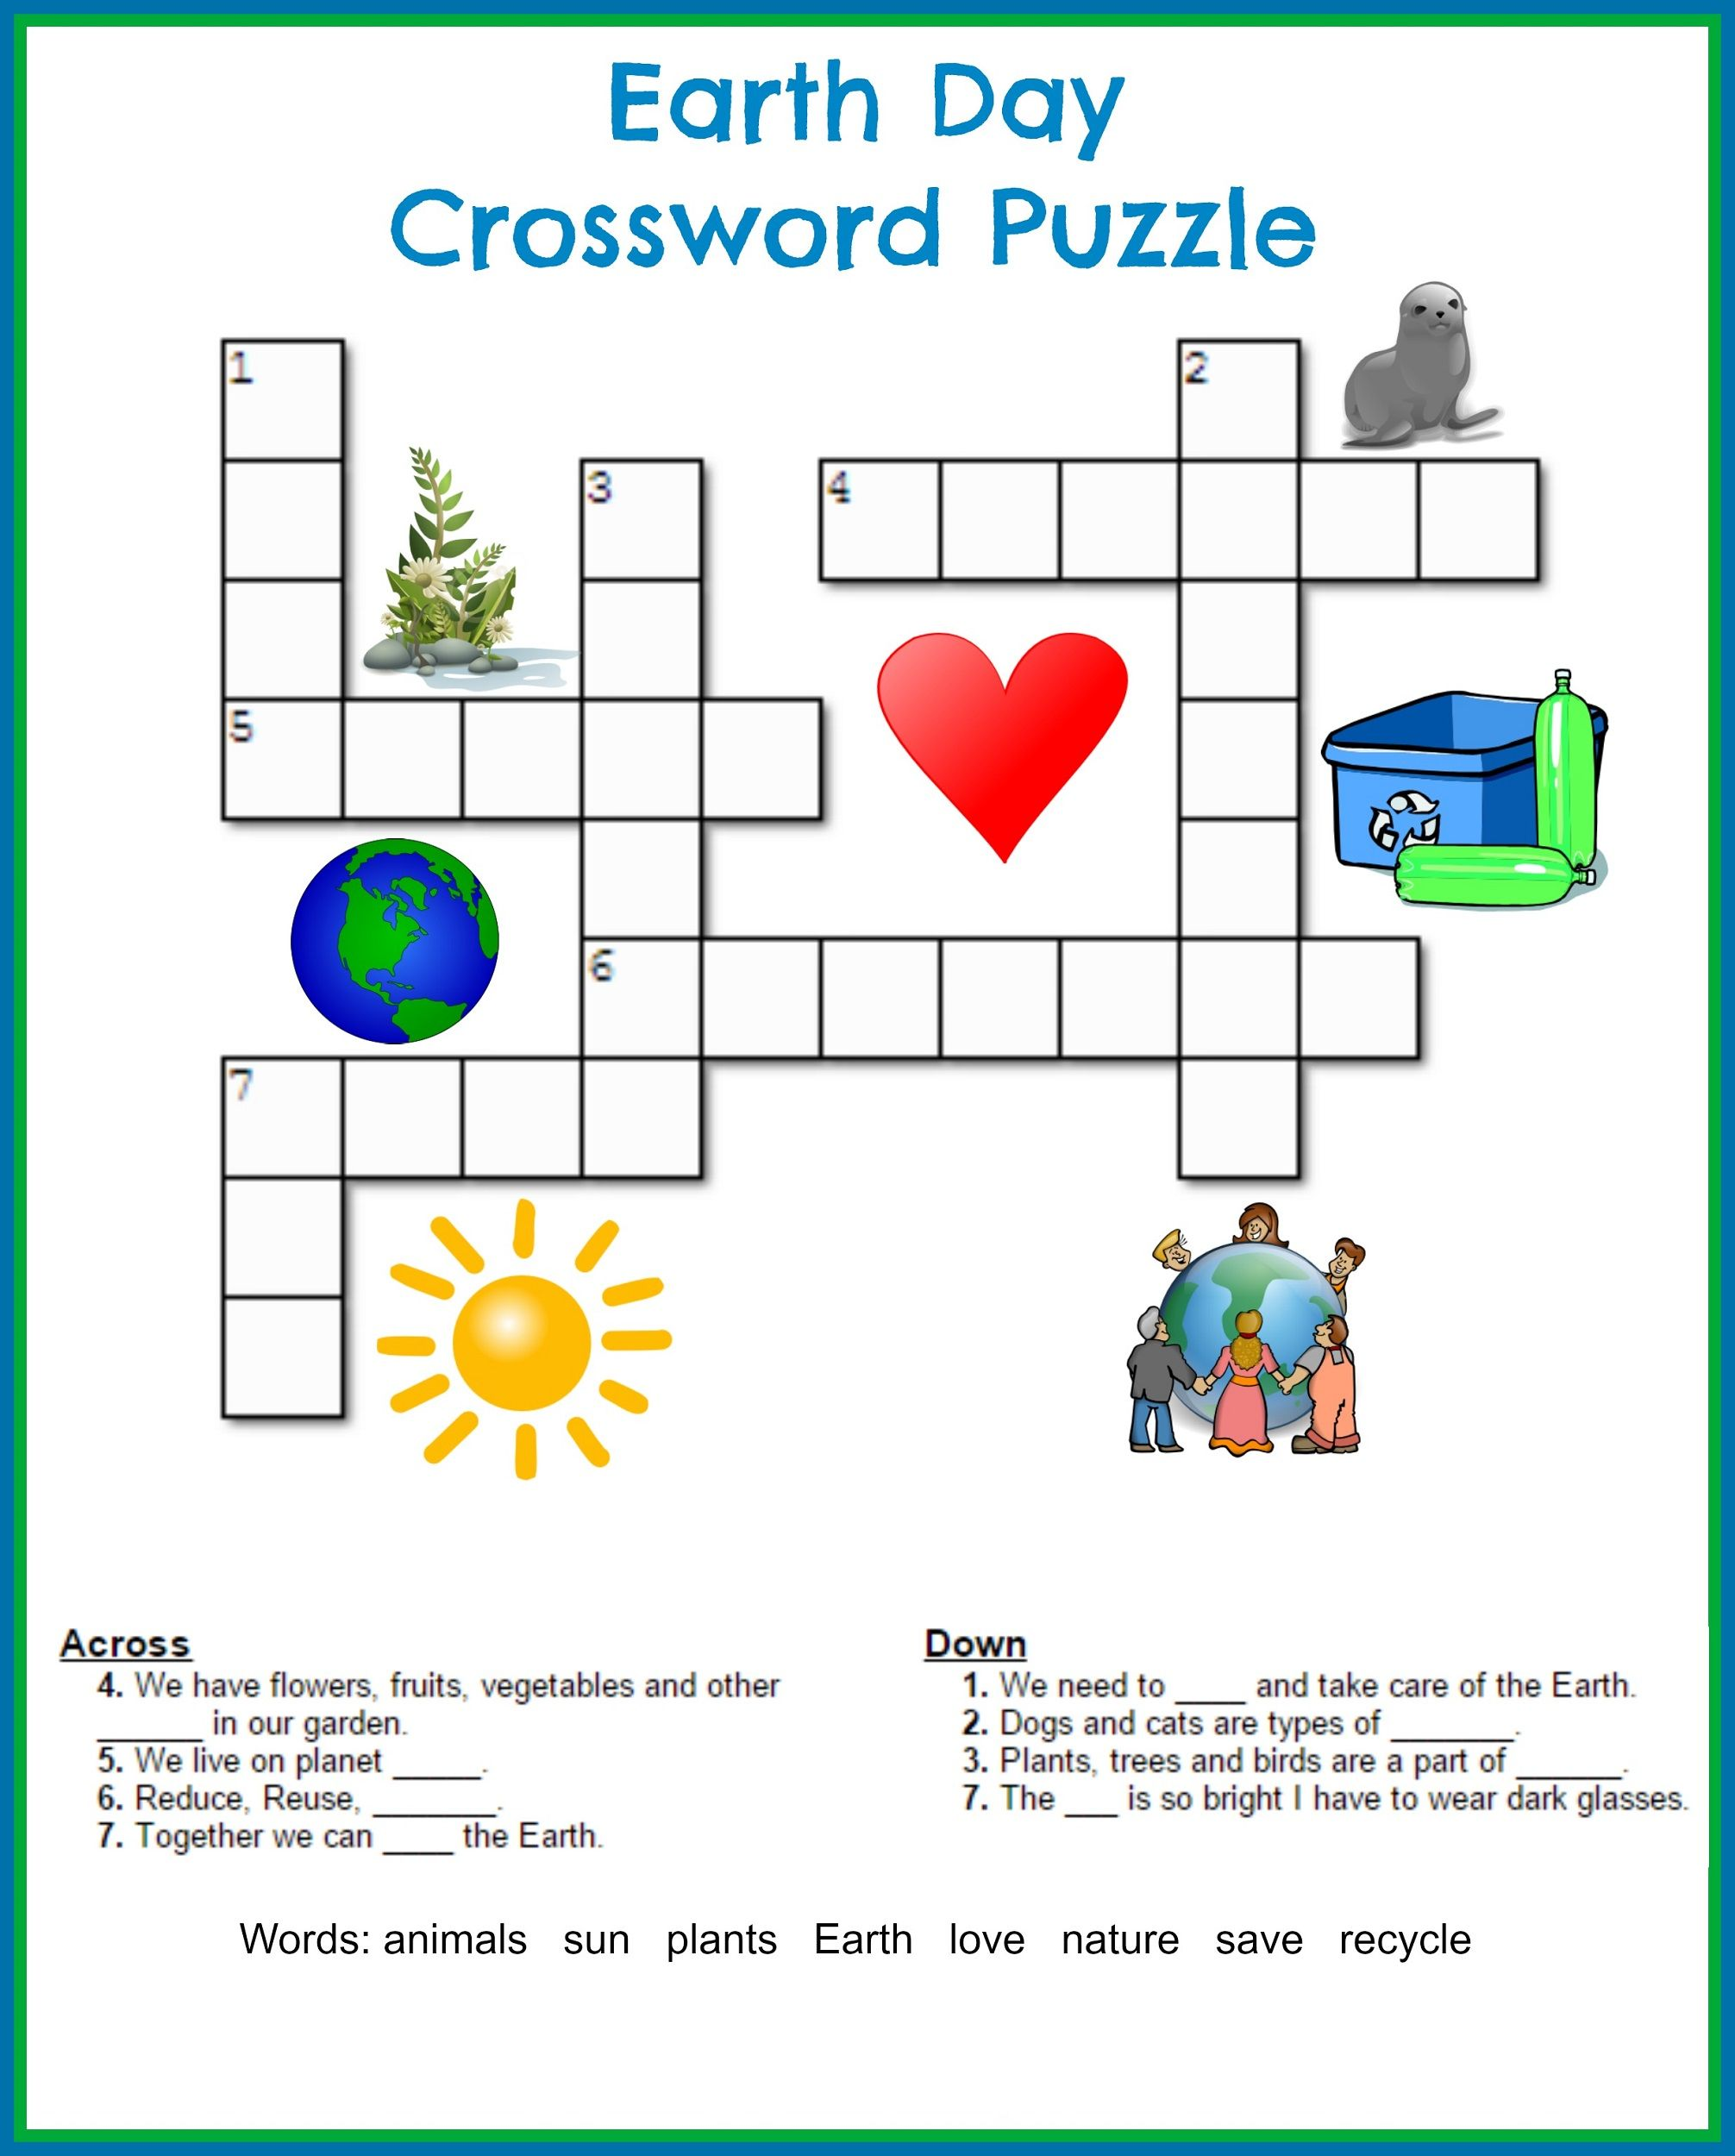 Remarkable image intended for kids crossword puzzles printable